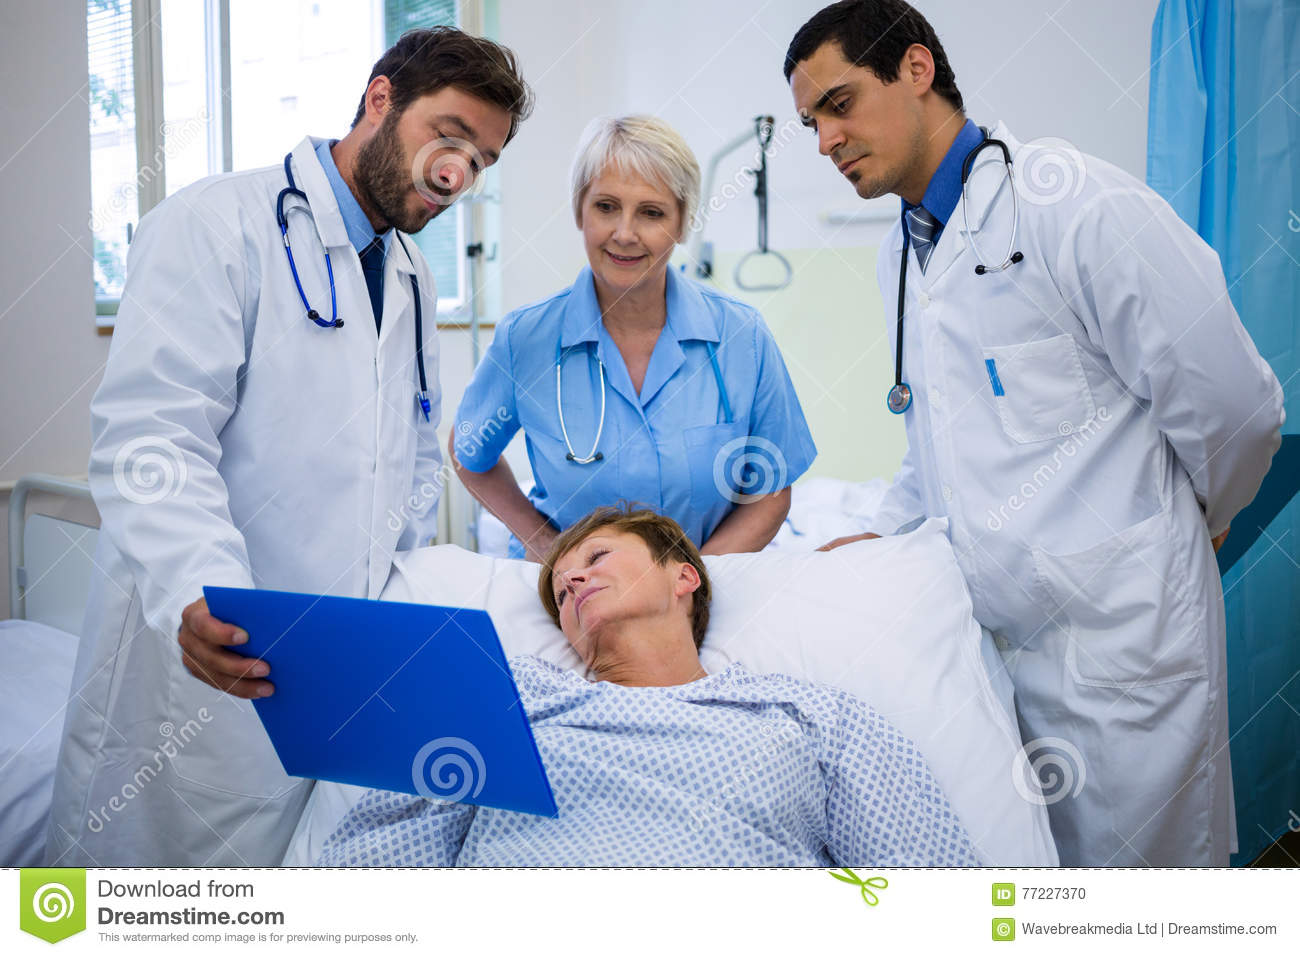 ccf7c924357 Doctors Showing Medical Report To Patient Stock Photo - Image of ...